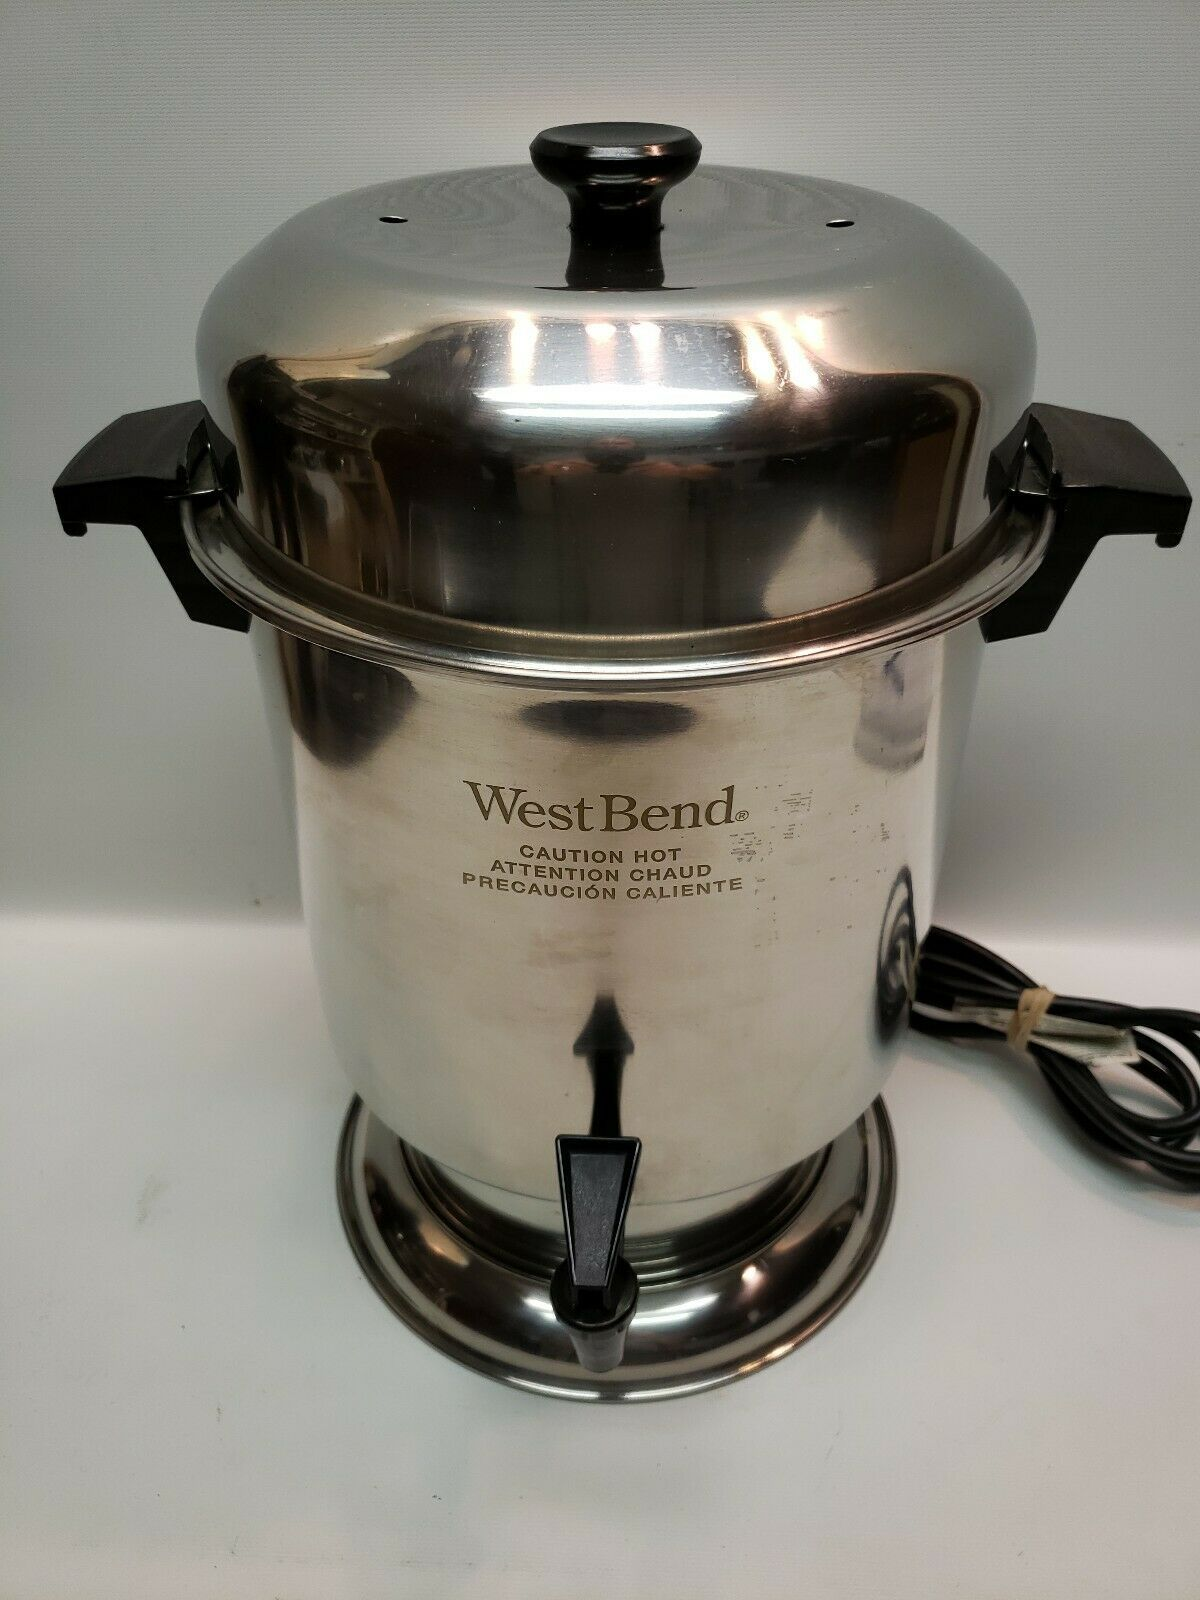 West Bend 12 55 Cup Commercial Coffee Maker Urn Stainless Steel 932w2 72244336009 Ebay In 2020 Commercial Coffee Makers Coffee Maker Electric Coffee Maker